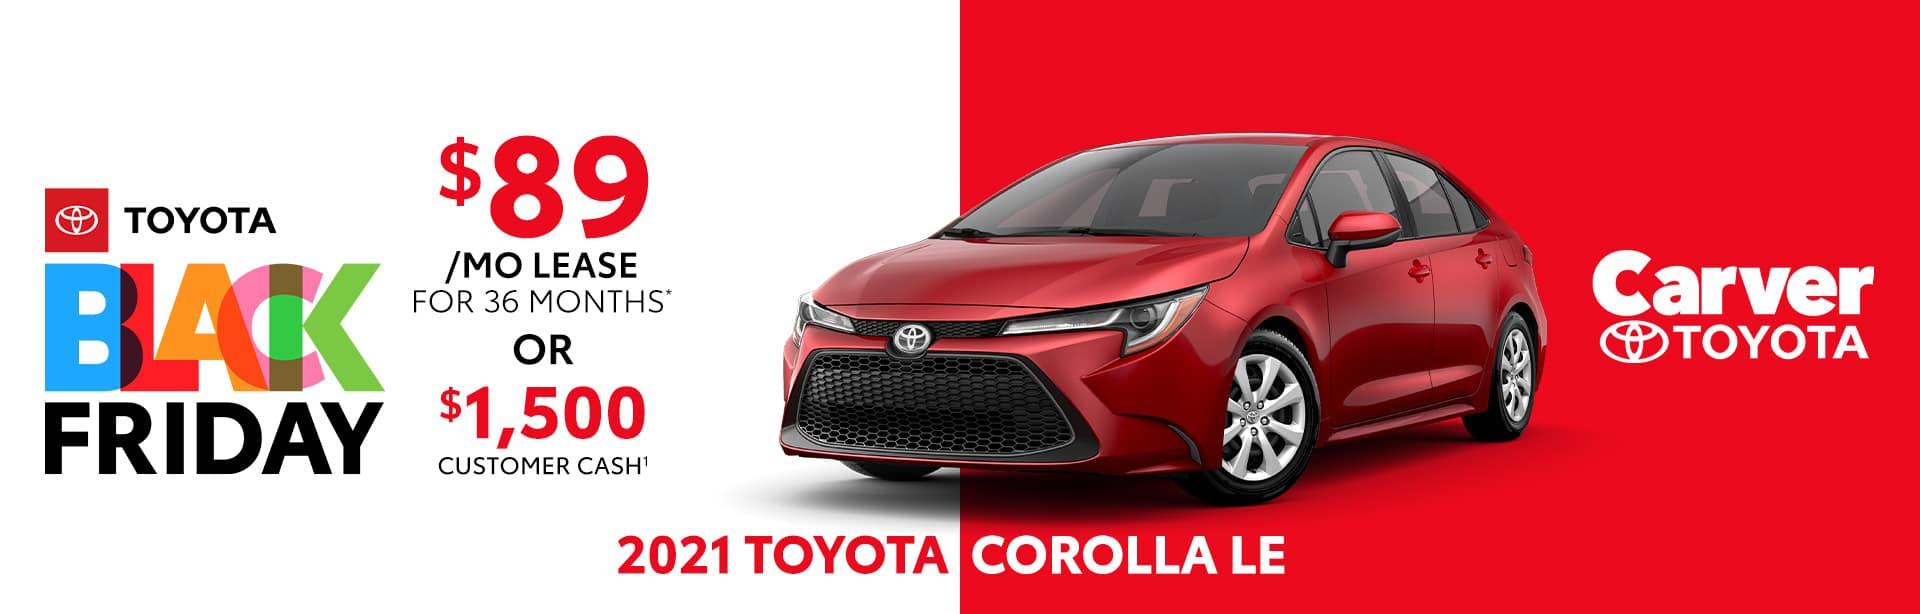 Lease or customer cash offer on the new 2021 Toyota Corolla LE near Columbus, IN